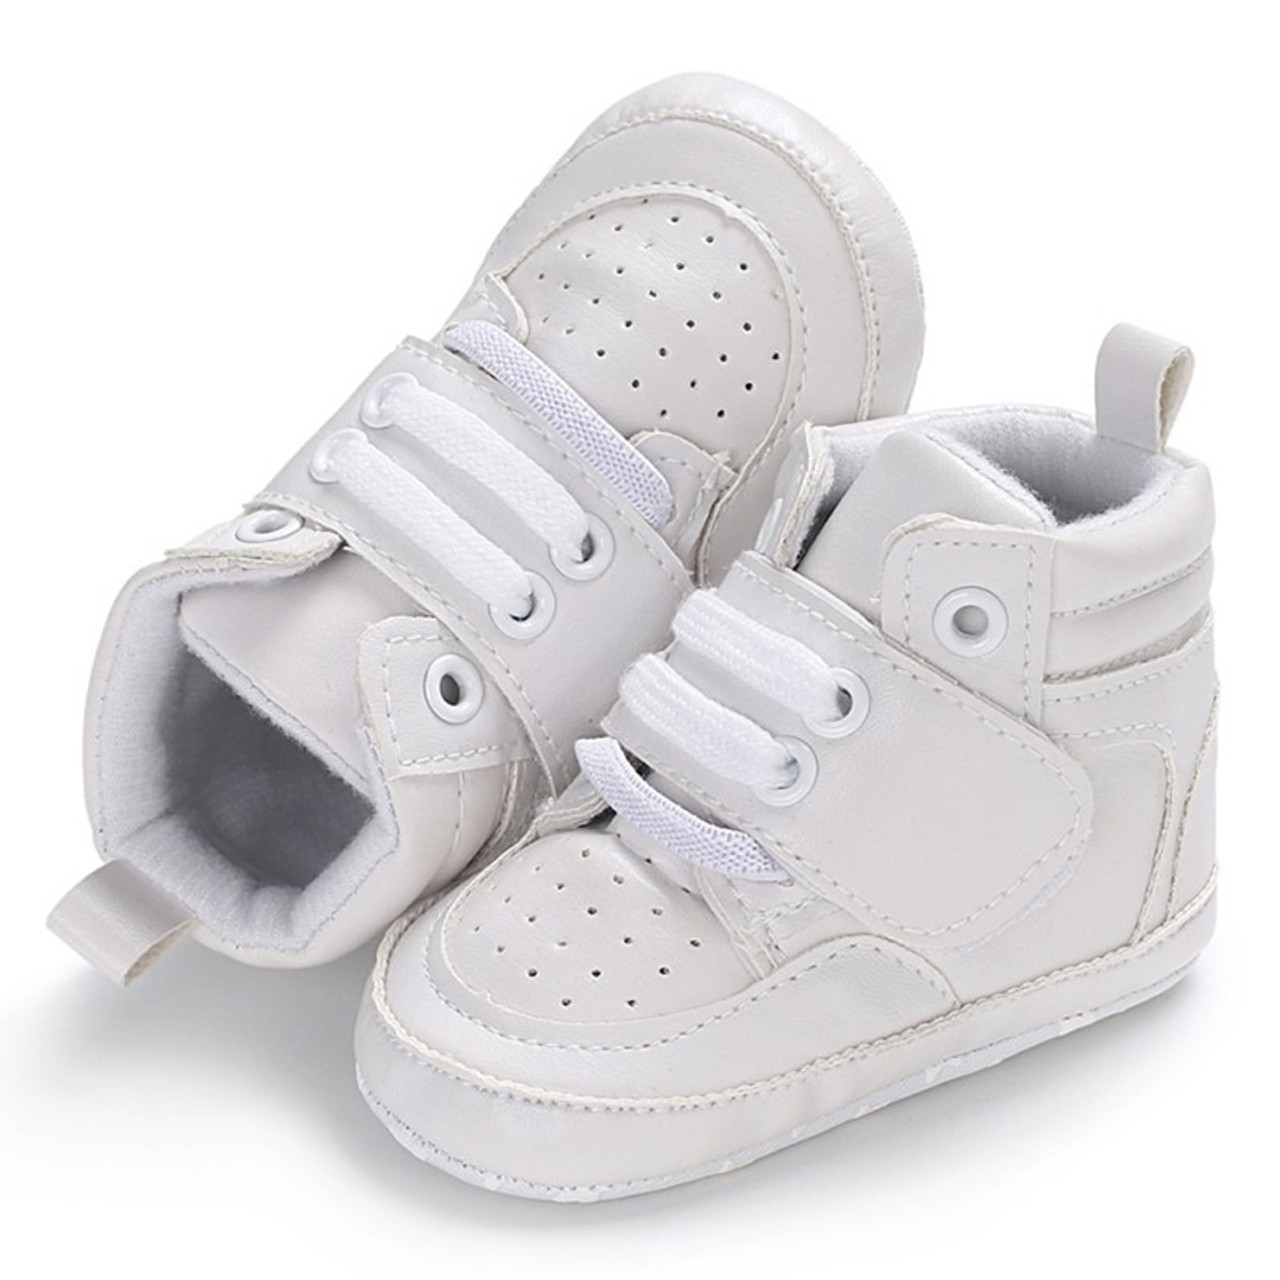 4d5cb6472 Newborn Kids Sneakers Baby Boys Shoes High Top Solid Soft Sole First  Walkers Infant Toddler Antislip ...